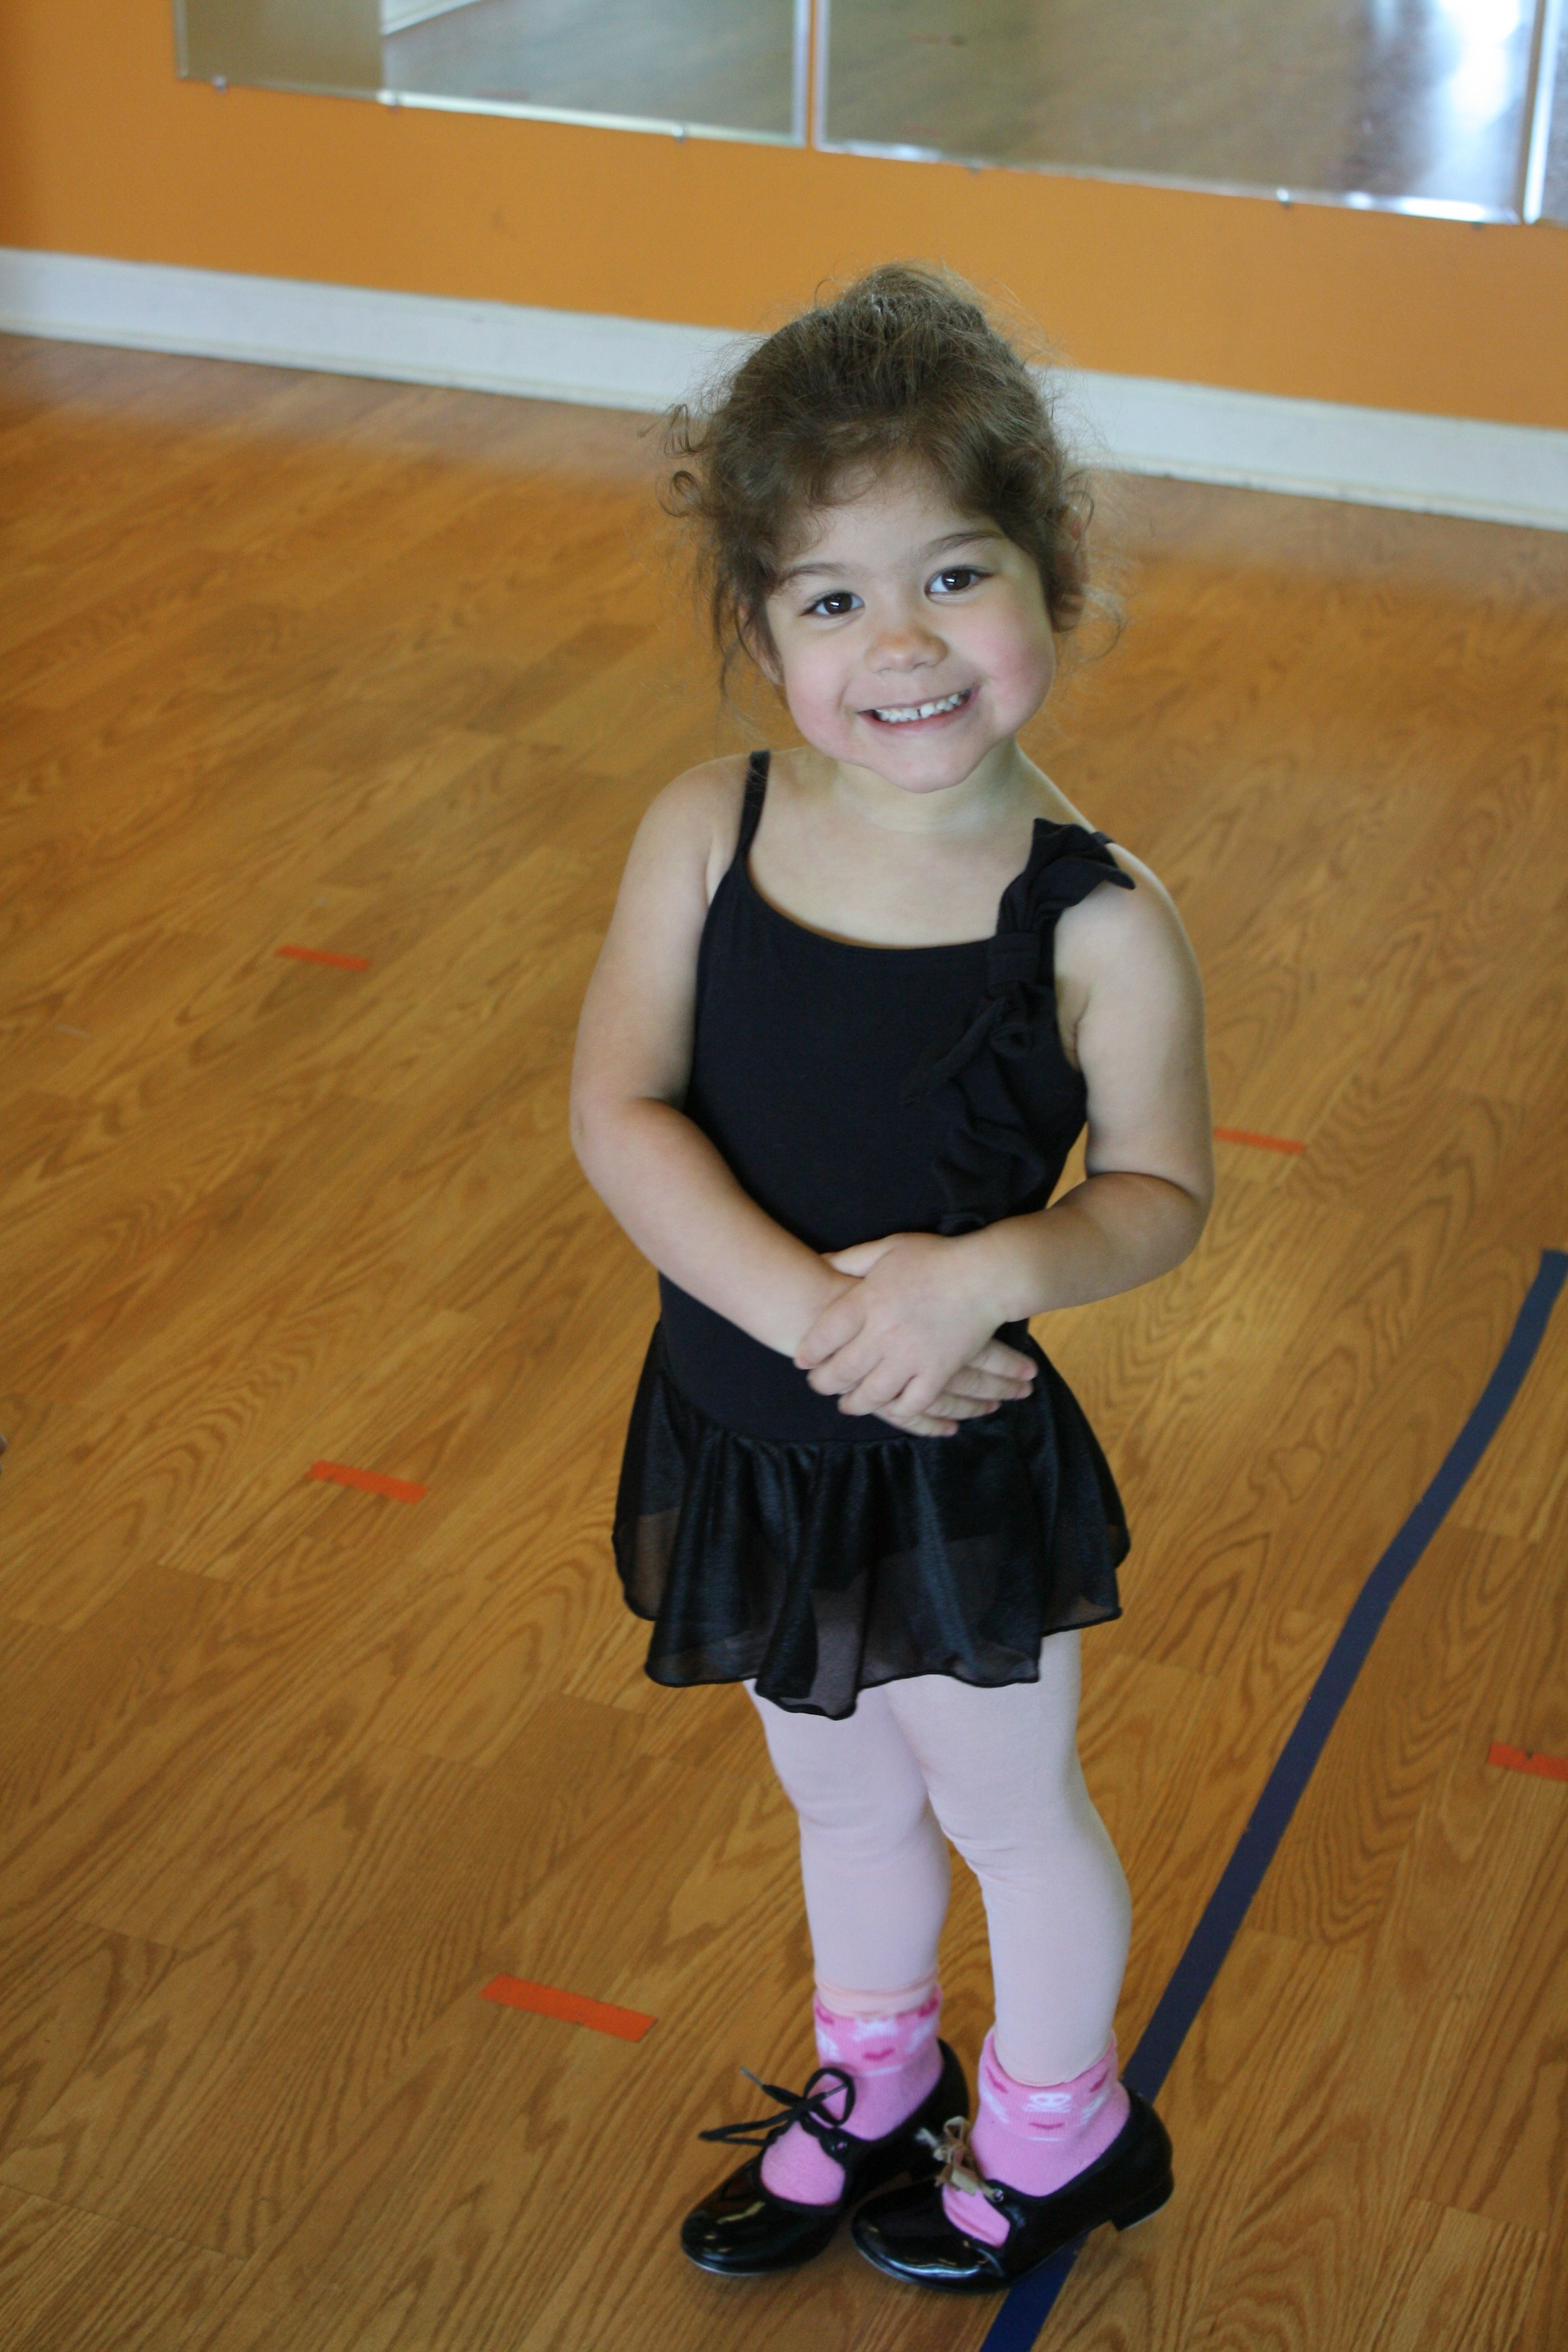 Tap shoes on and ready to dance